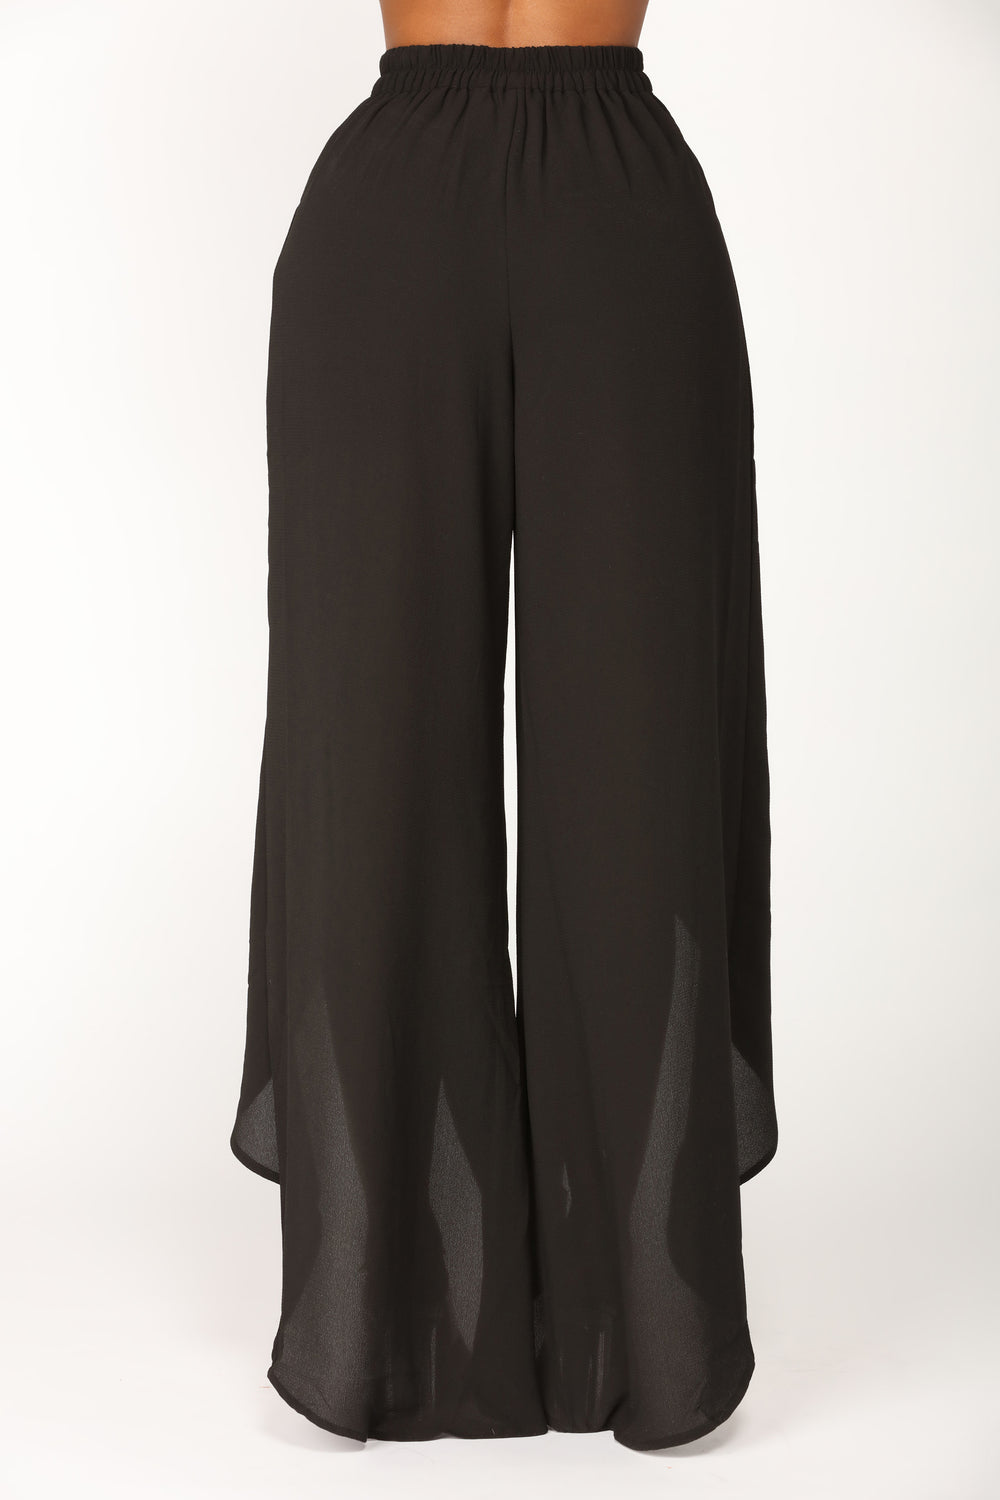 Mind Games Slit Pants - Black